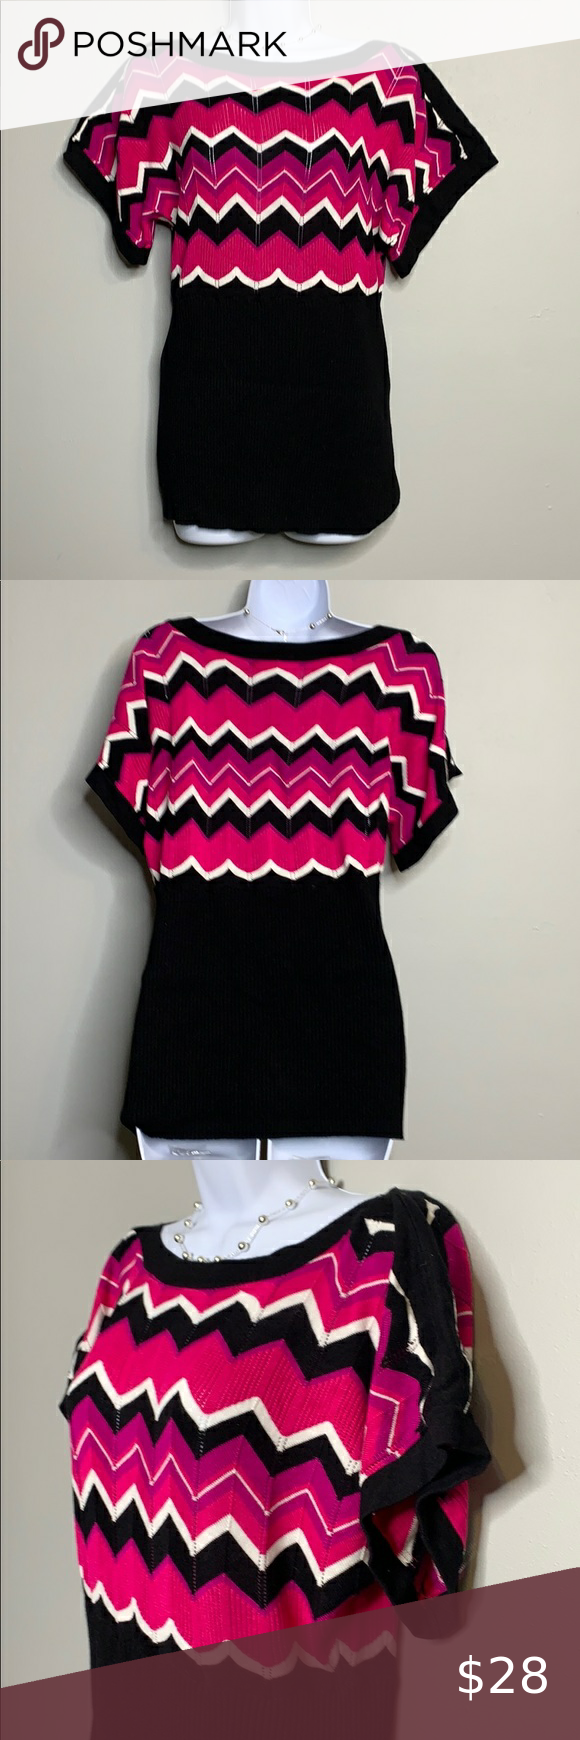 """Belldini Pink Black Chevron Cap Sleeve B3 0214 Belldini Pink Black White Chevron Knit Cap Sleeve Ribbed Sweater Pre owned. Good condition. No flaws. Flat Lay Measurements  19"""" long 16"""" chest 12"""" waist Belldini Sweaters Crew & Scoop Necks"""